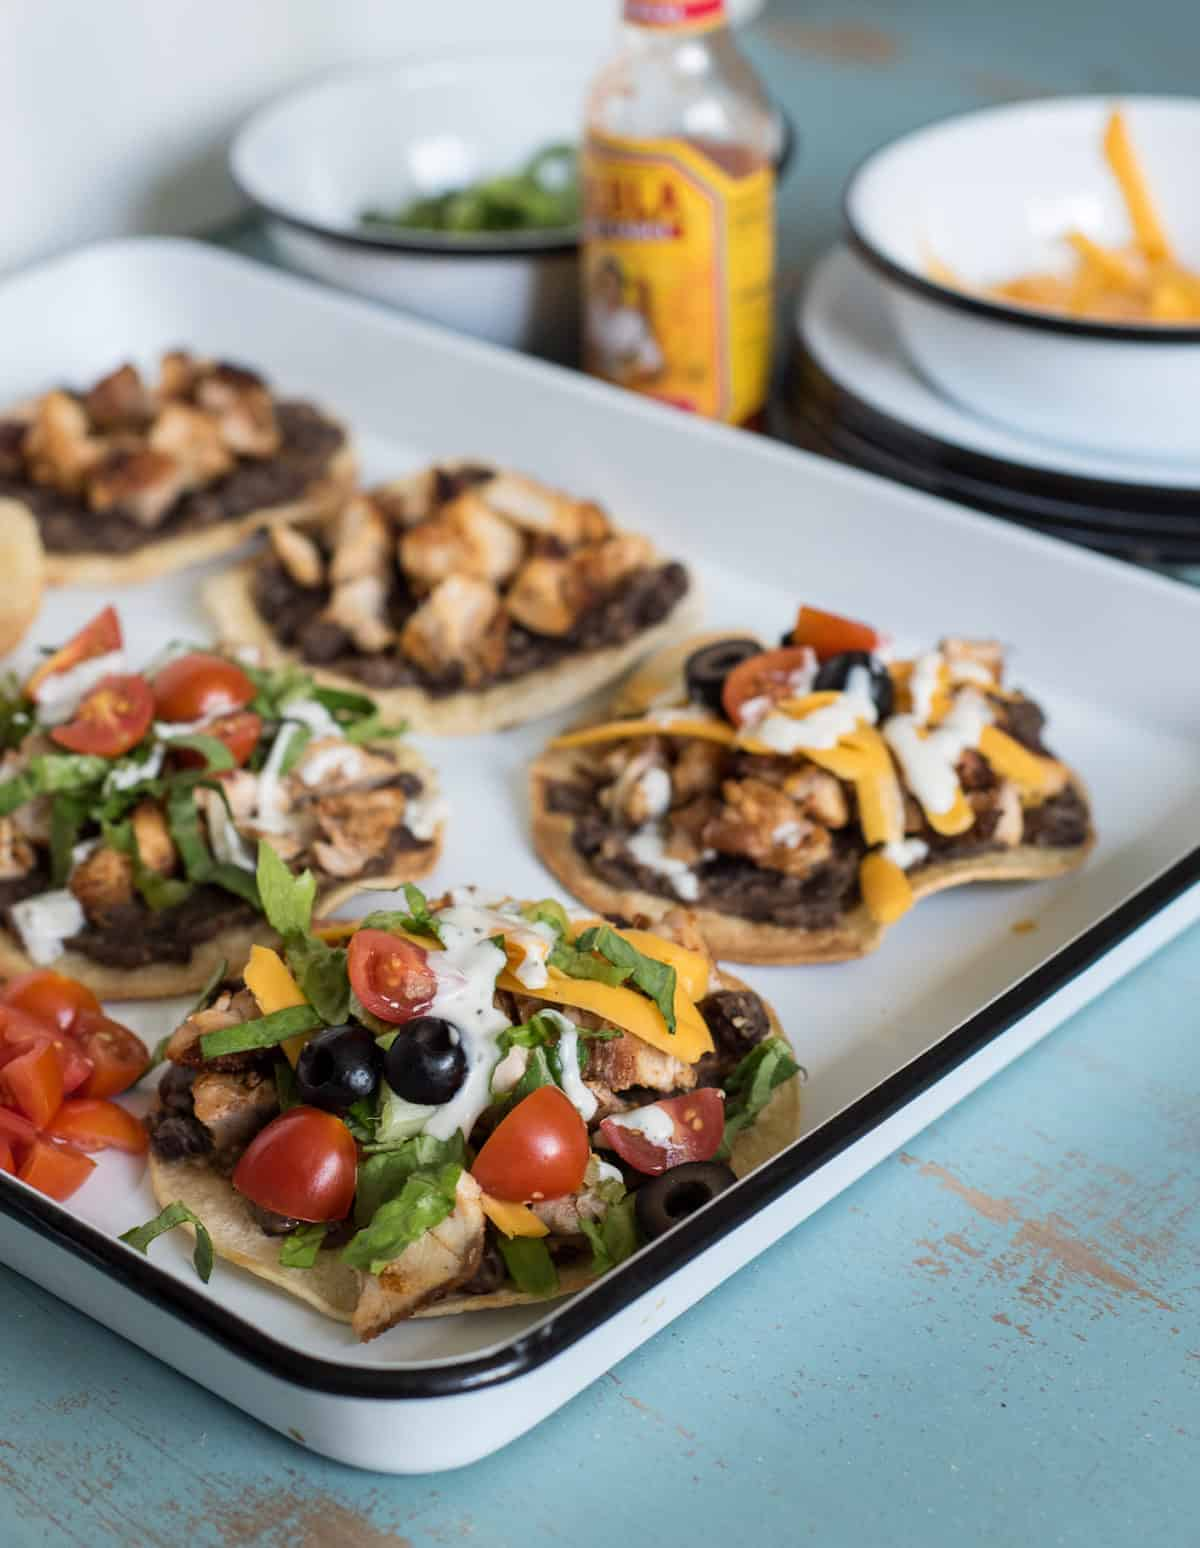 The Best Chicken Tostada Recipe takes 30 minutes to make, includes simple baked tostada shells, and the whole family will love it.